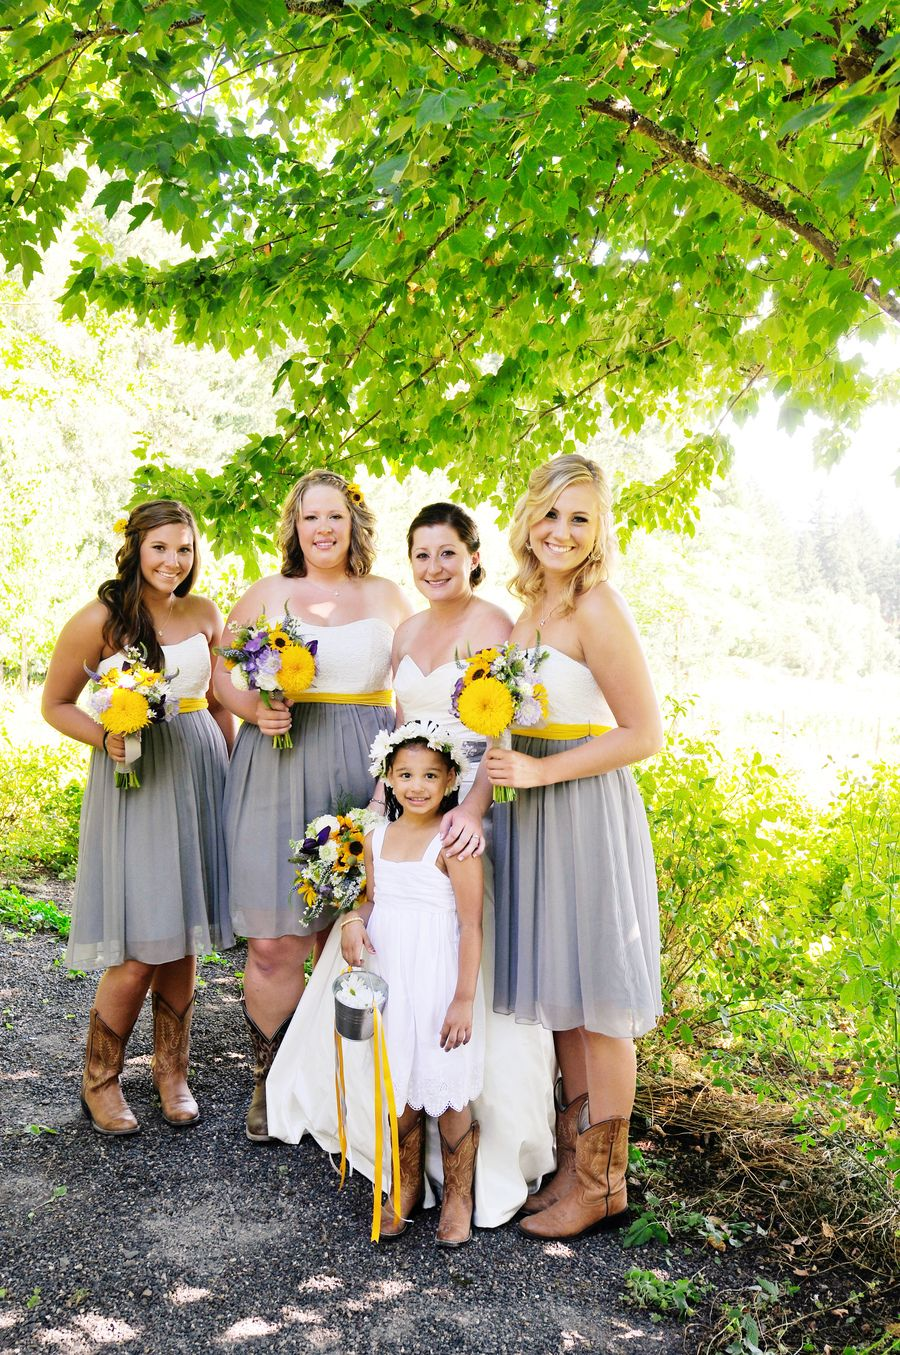 Garden vineyards wedding from bridal bliss deyla huss garden vineyards wedding from bridal bliss deyla huss photography ombrellifo Images